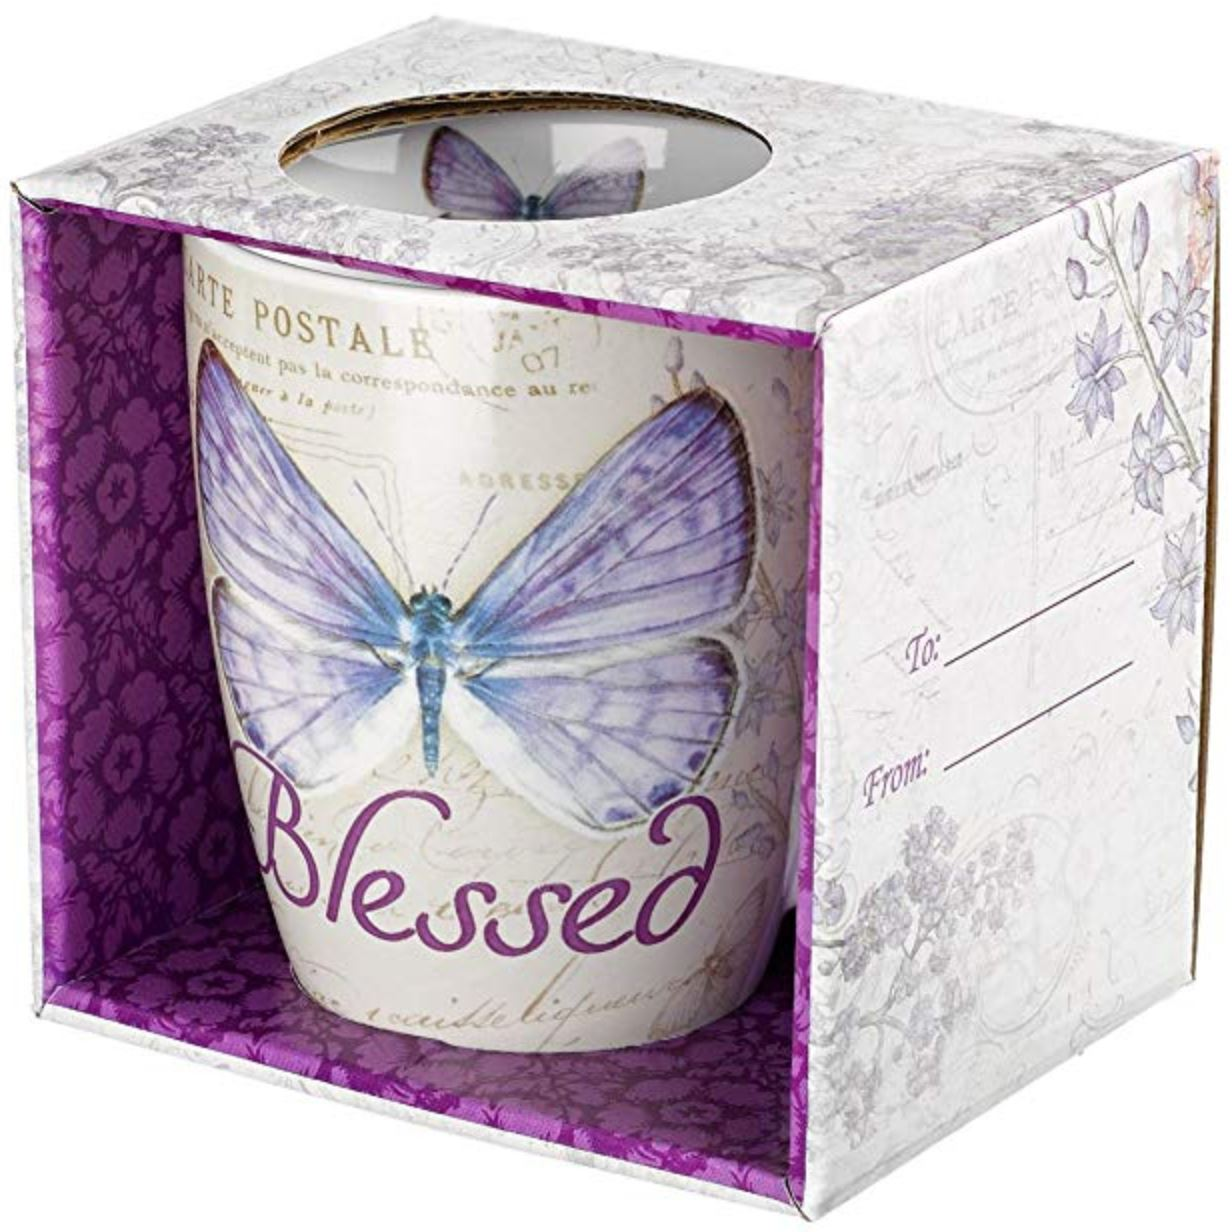 Christian Gifts for Women, Christian Birthday Gifts for Women